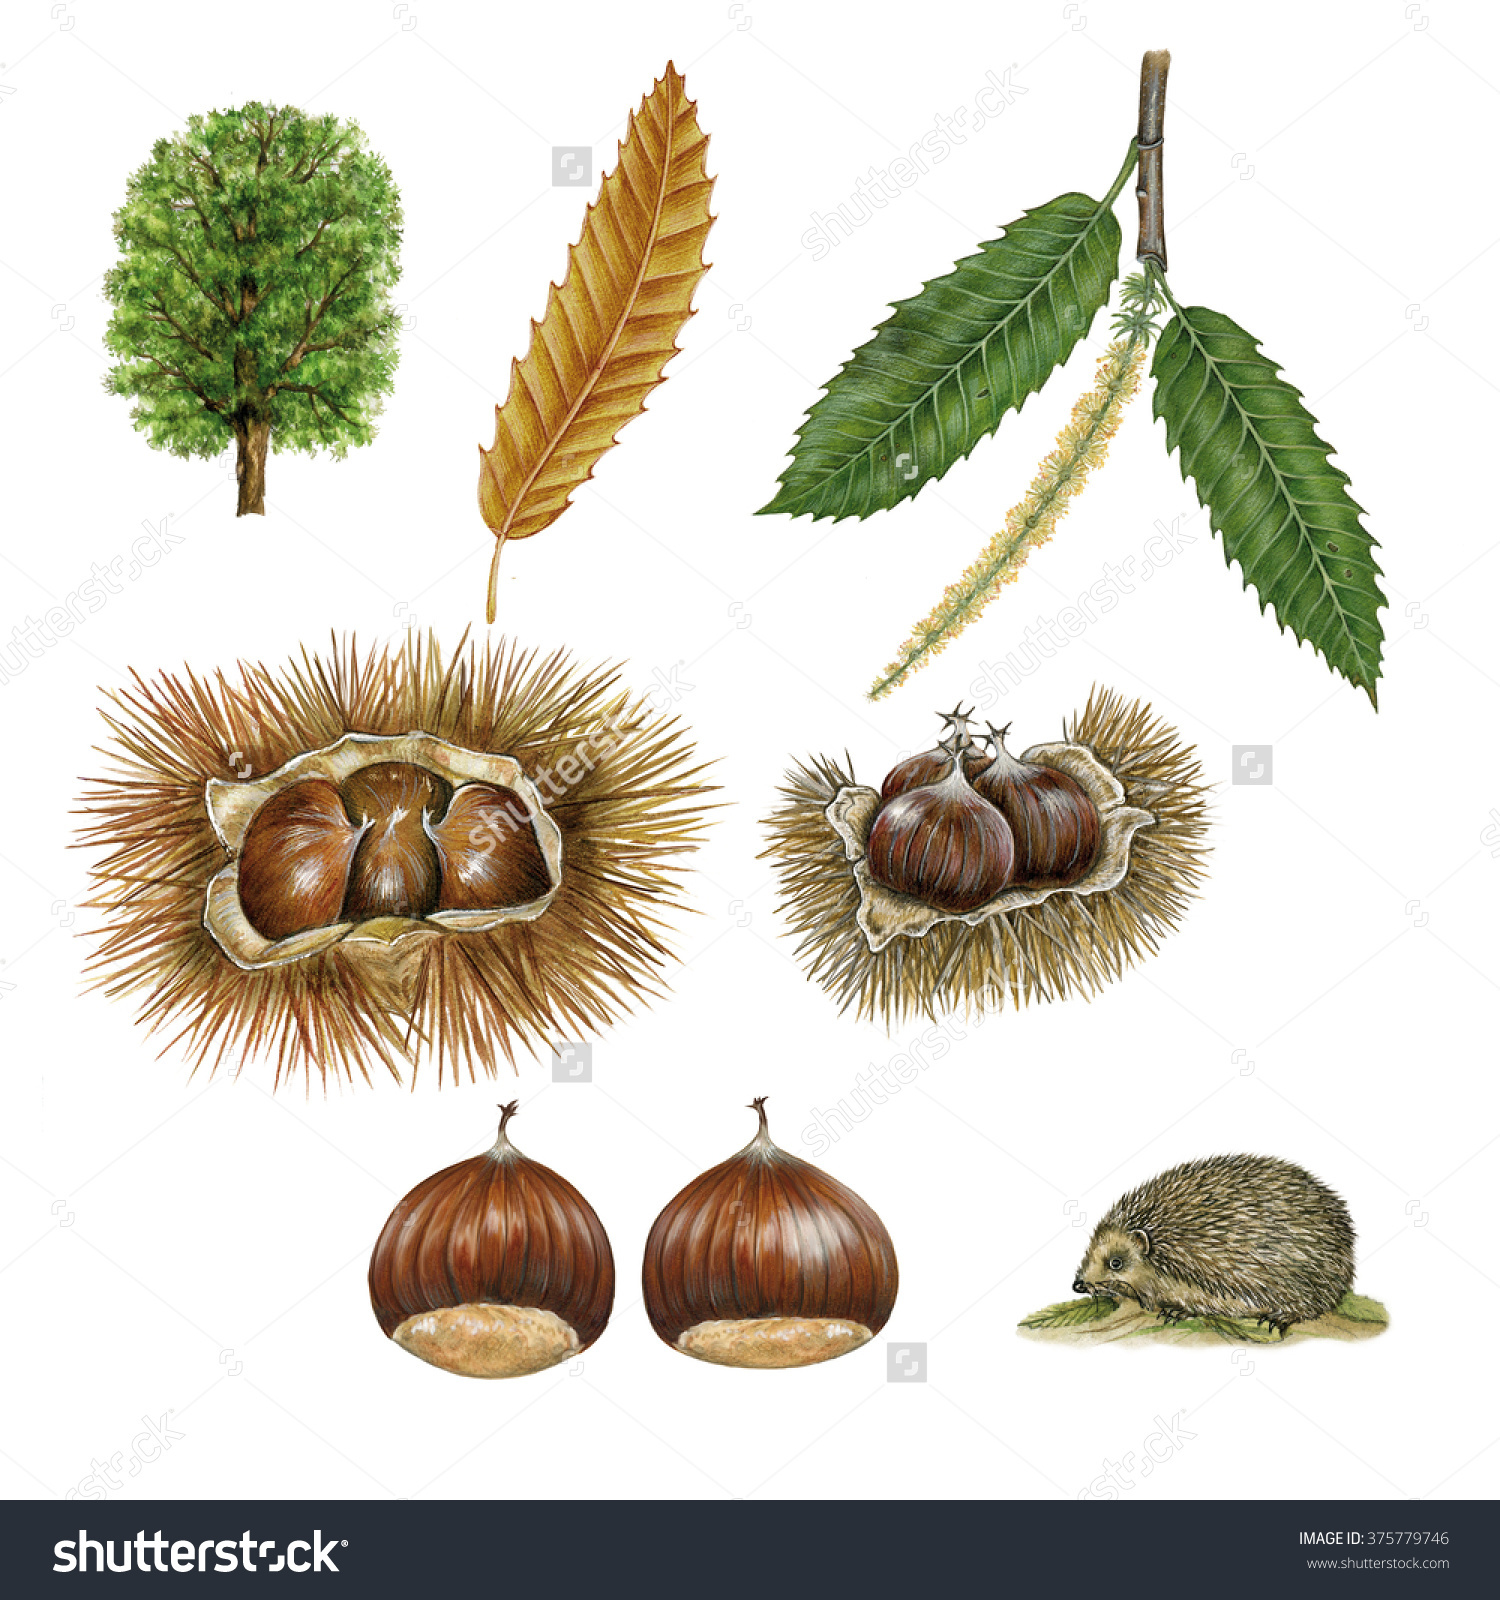 Realistic Botanic Illustrations Chestnut Castanea Sativa Stock.